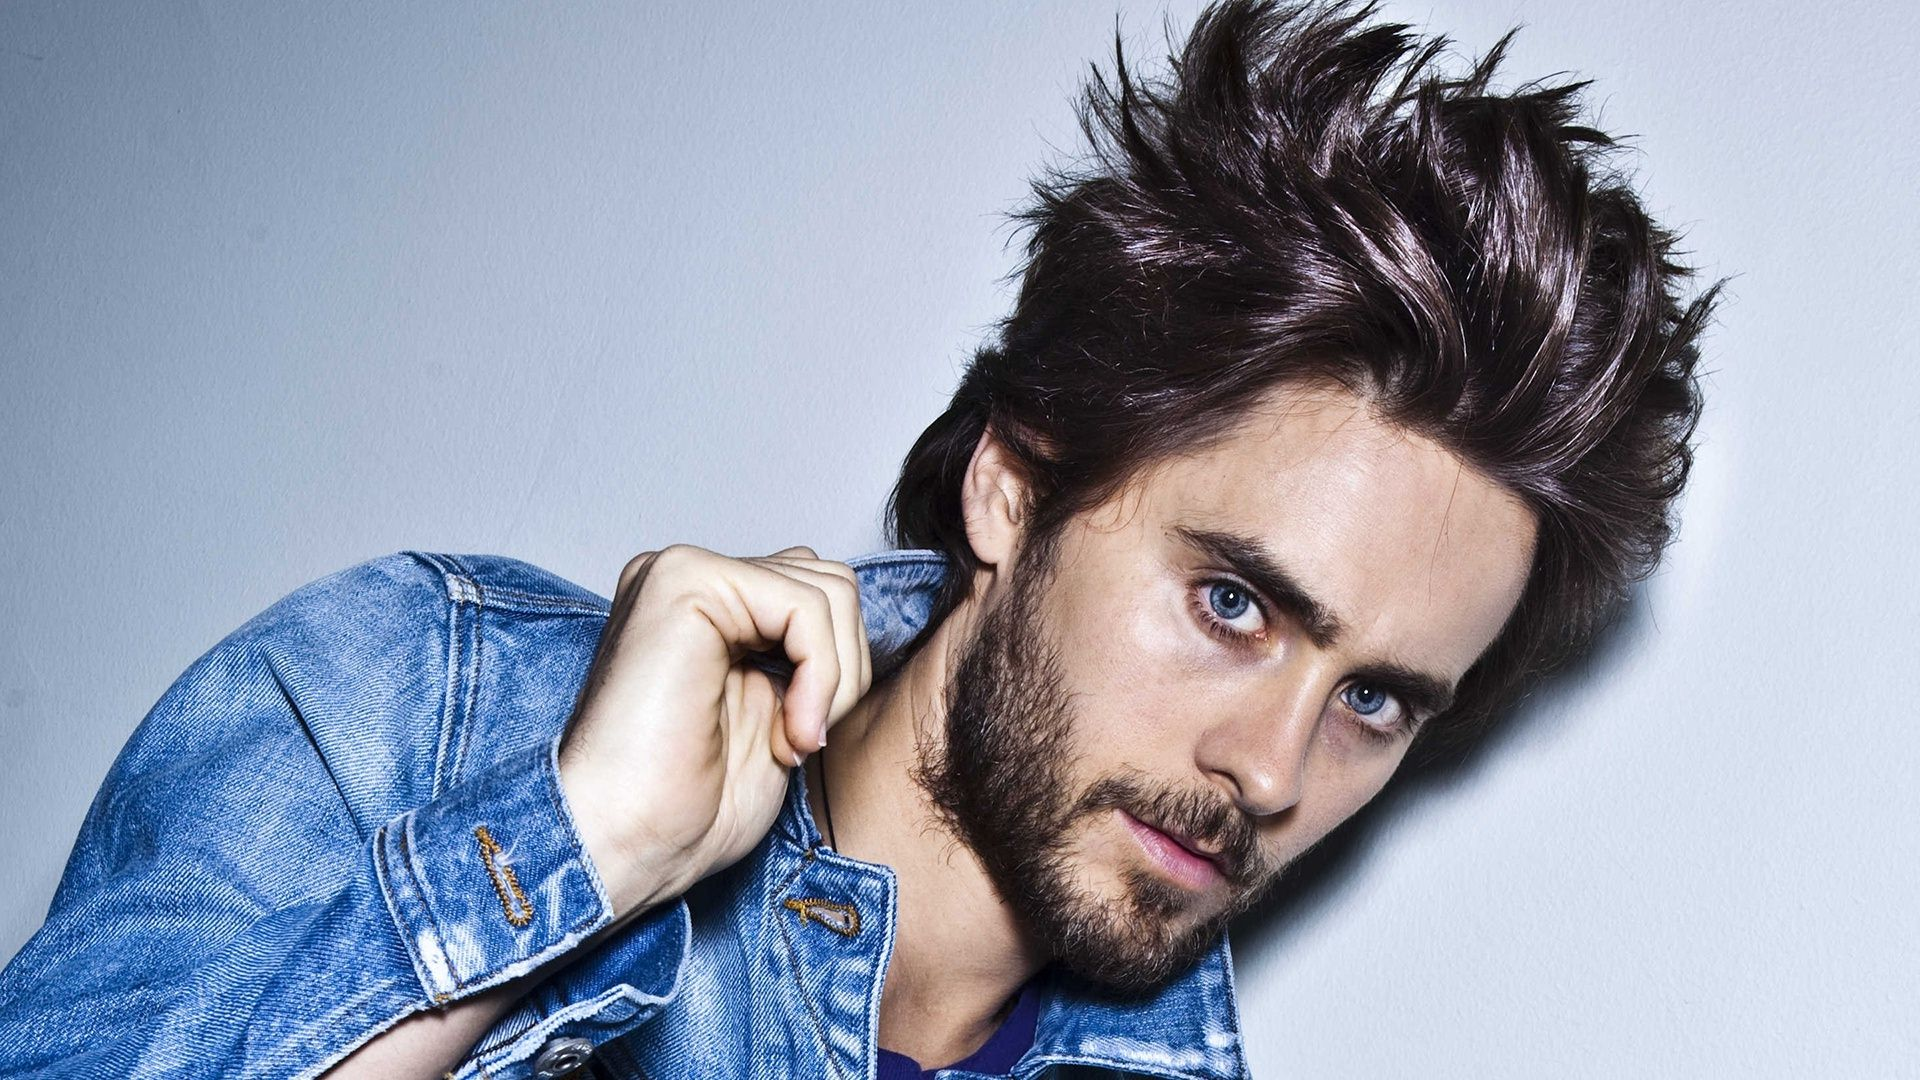 Jared Leto Top 6 Hairstyles | High Styley